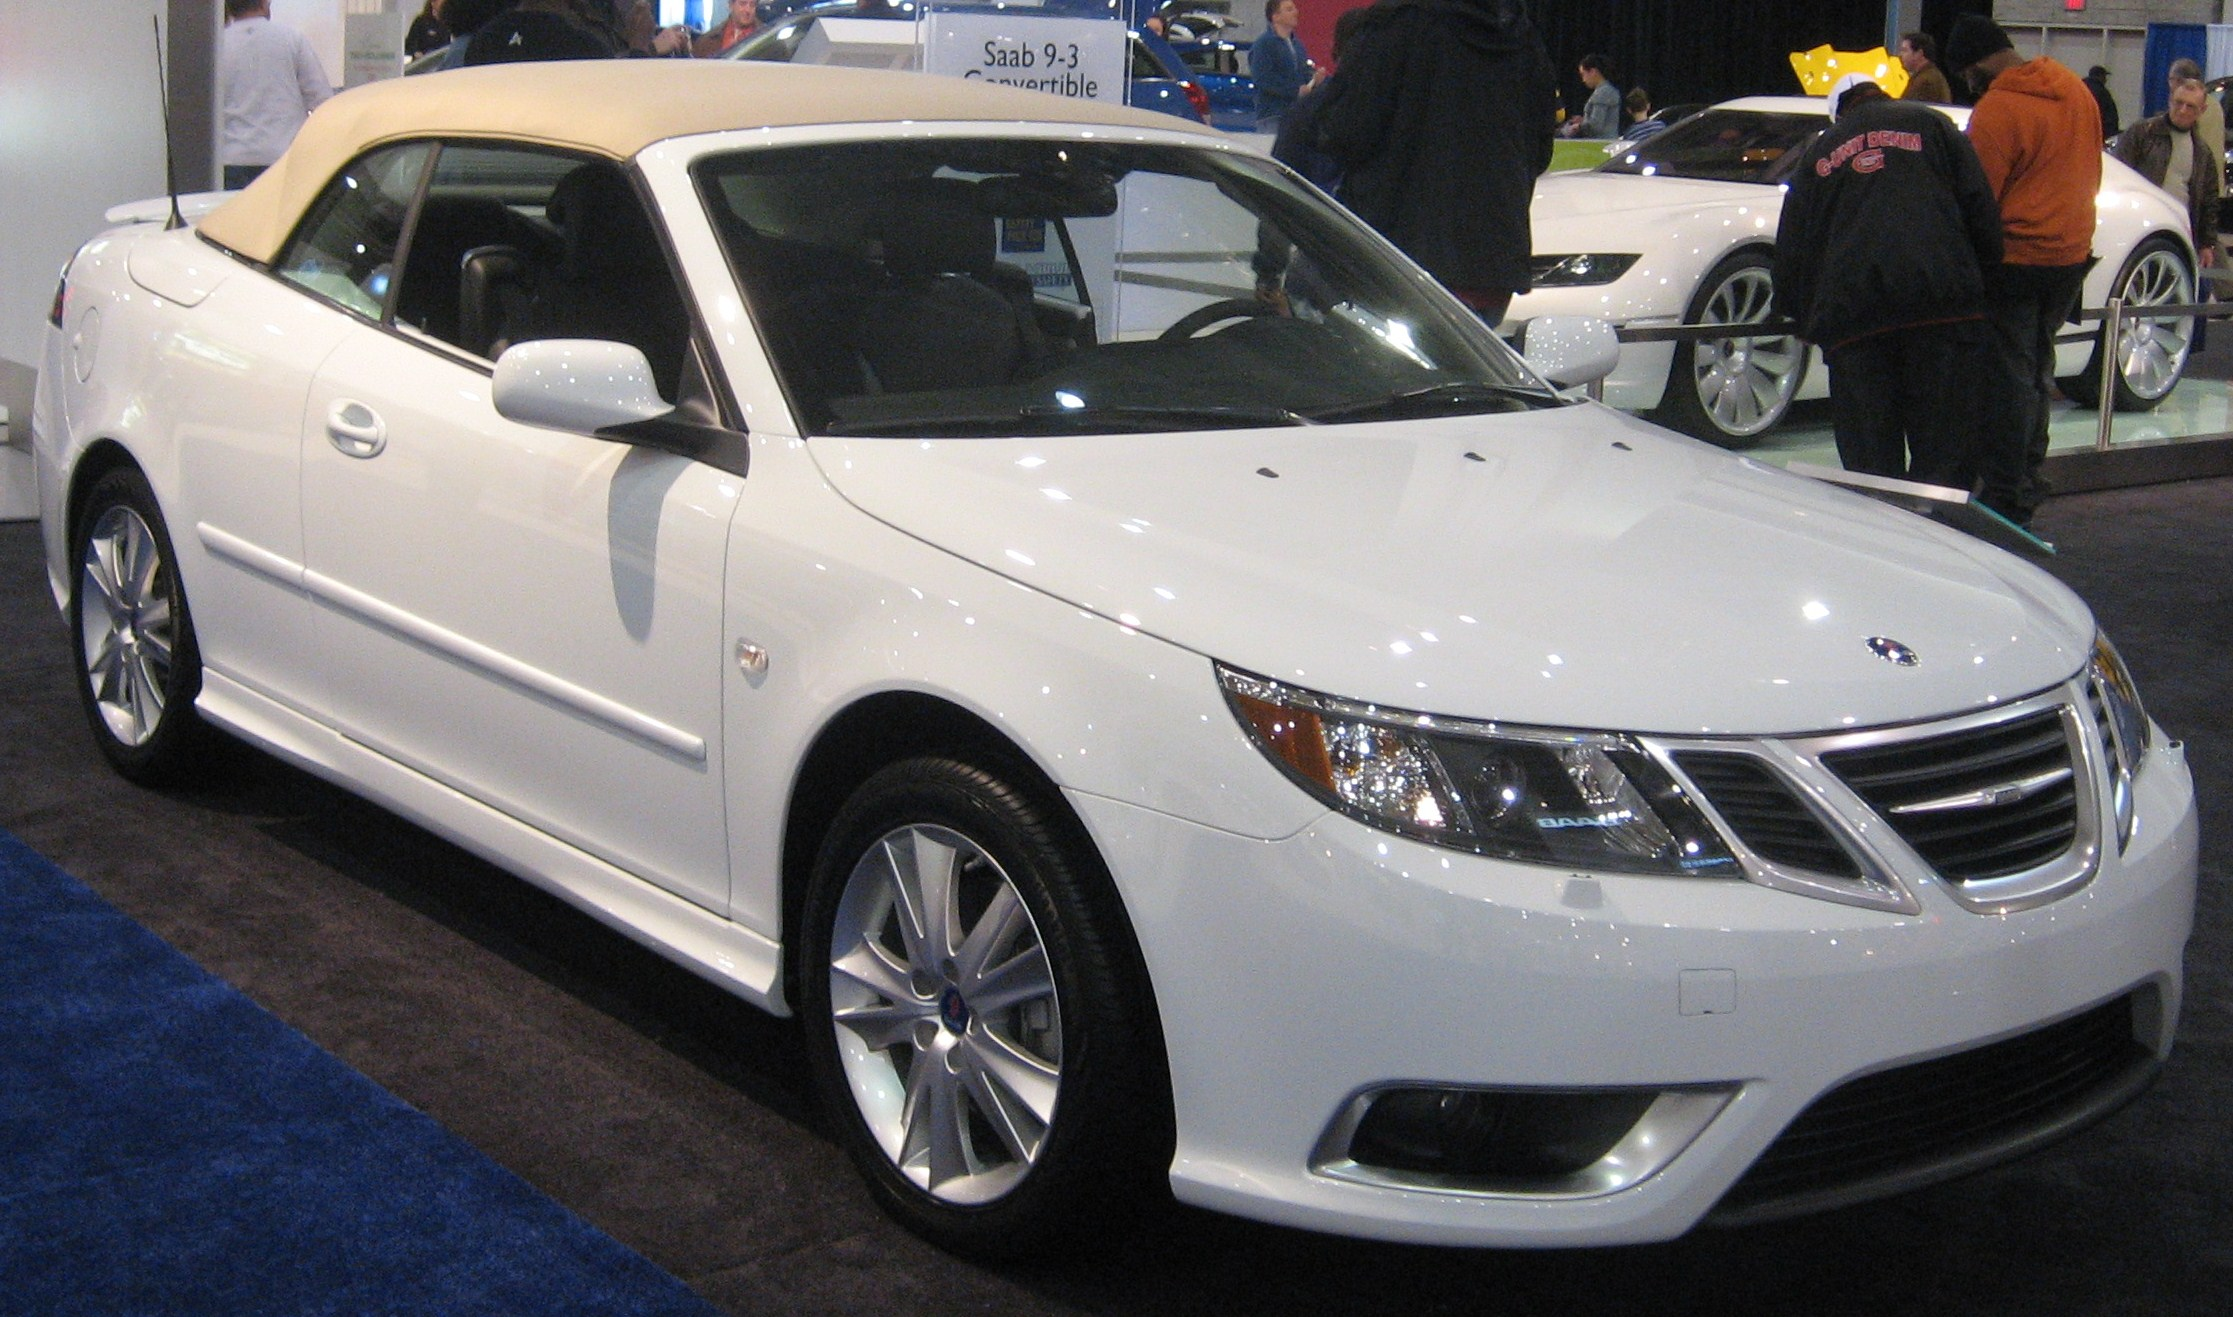 Saab  Car Doesn T Start After Long Drive Distributor